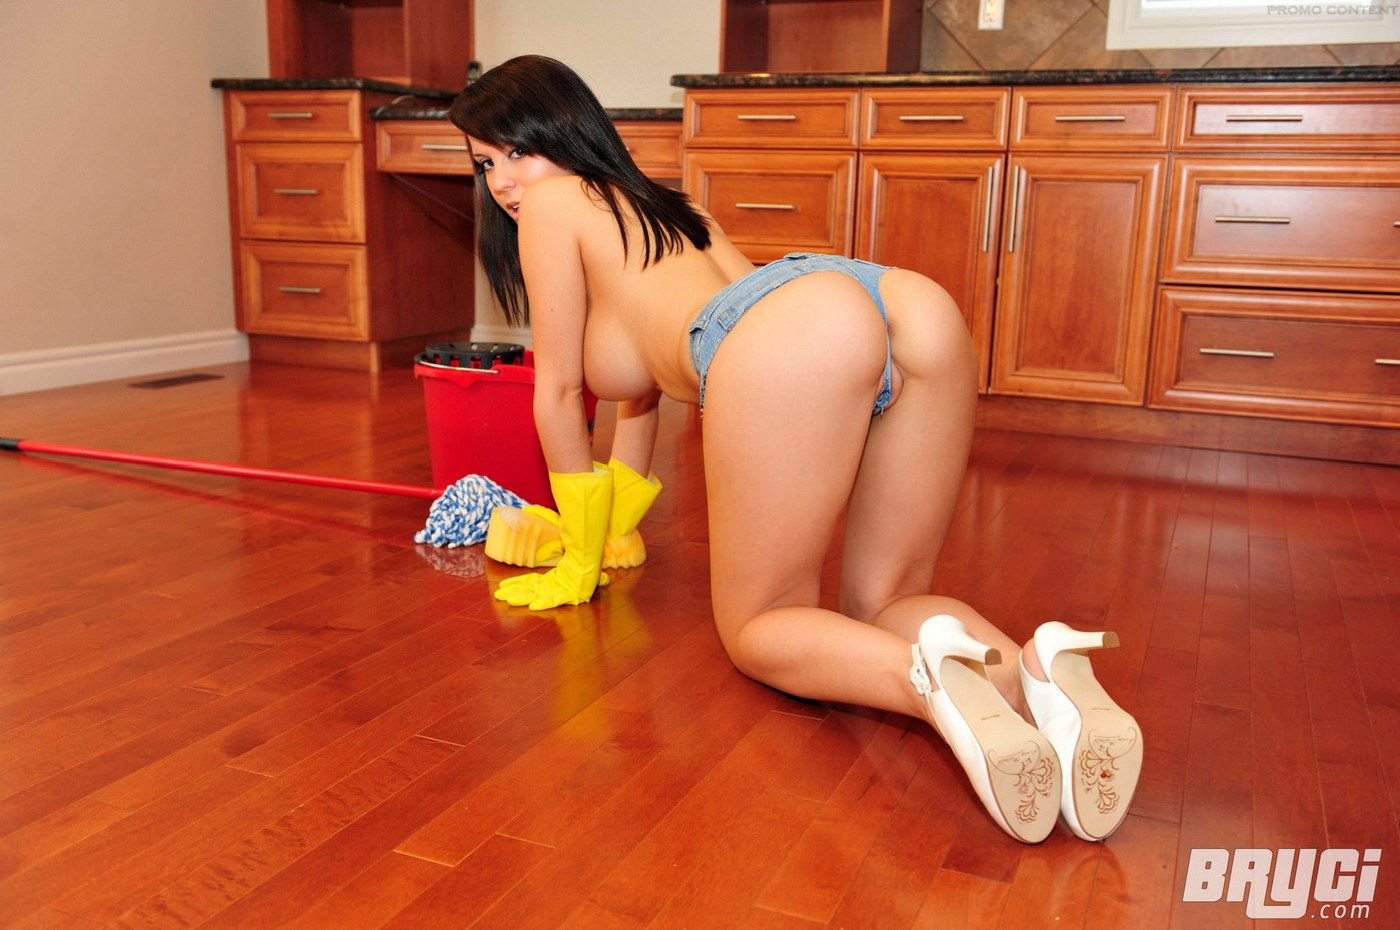 woman-cleaning-naked-ass-first-interracial-kiss-in-movies